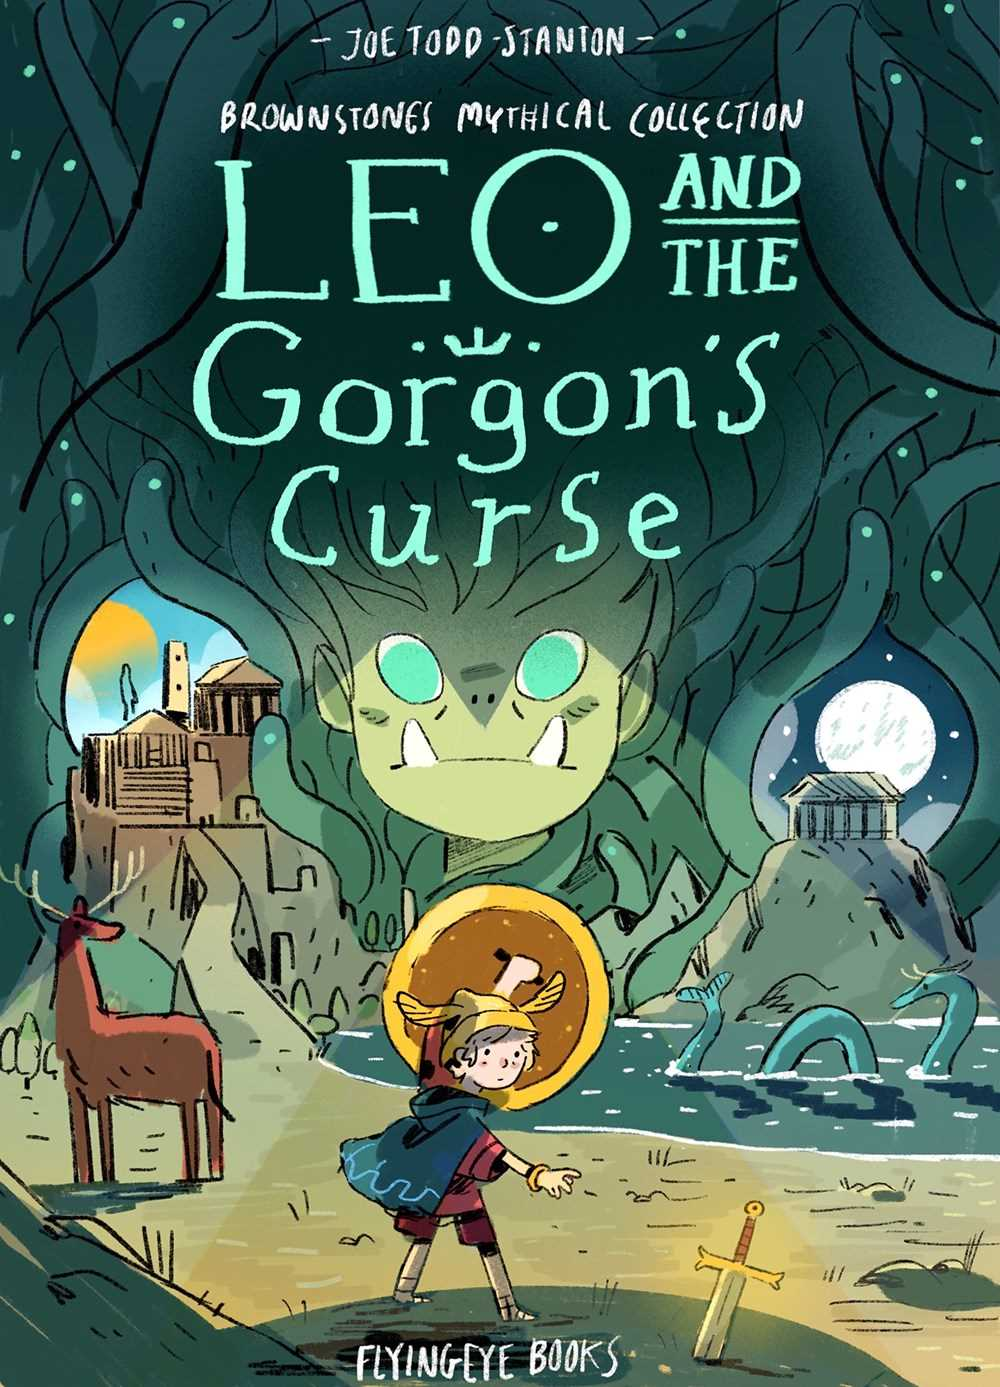 Brownstone's Mythical Collection #04: Leo and the Gorgon's Curse